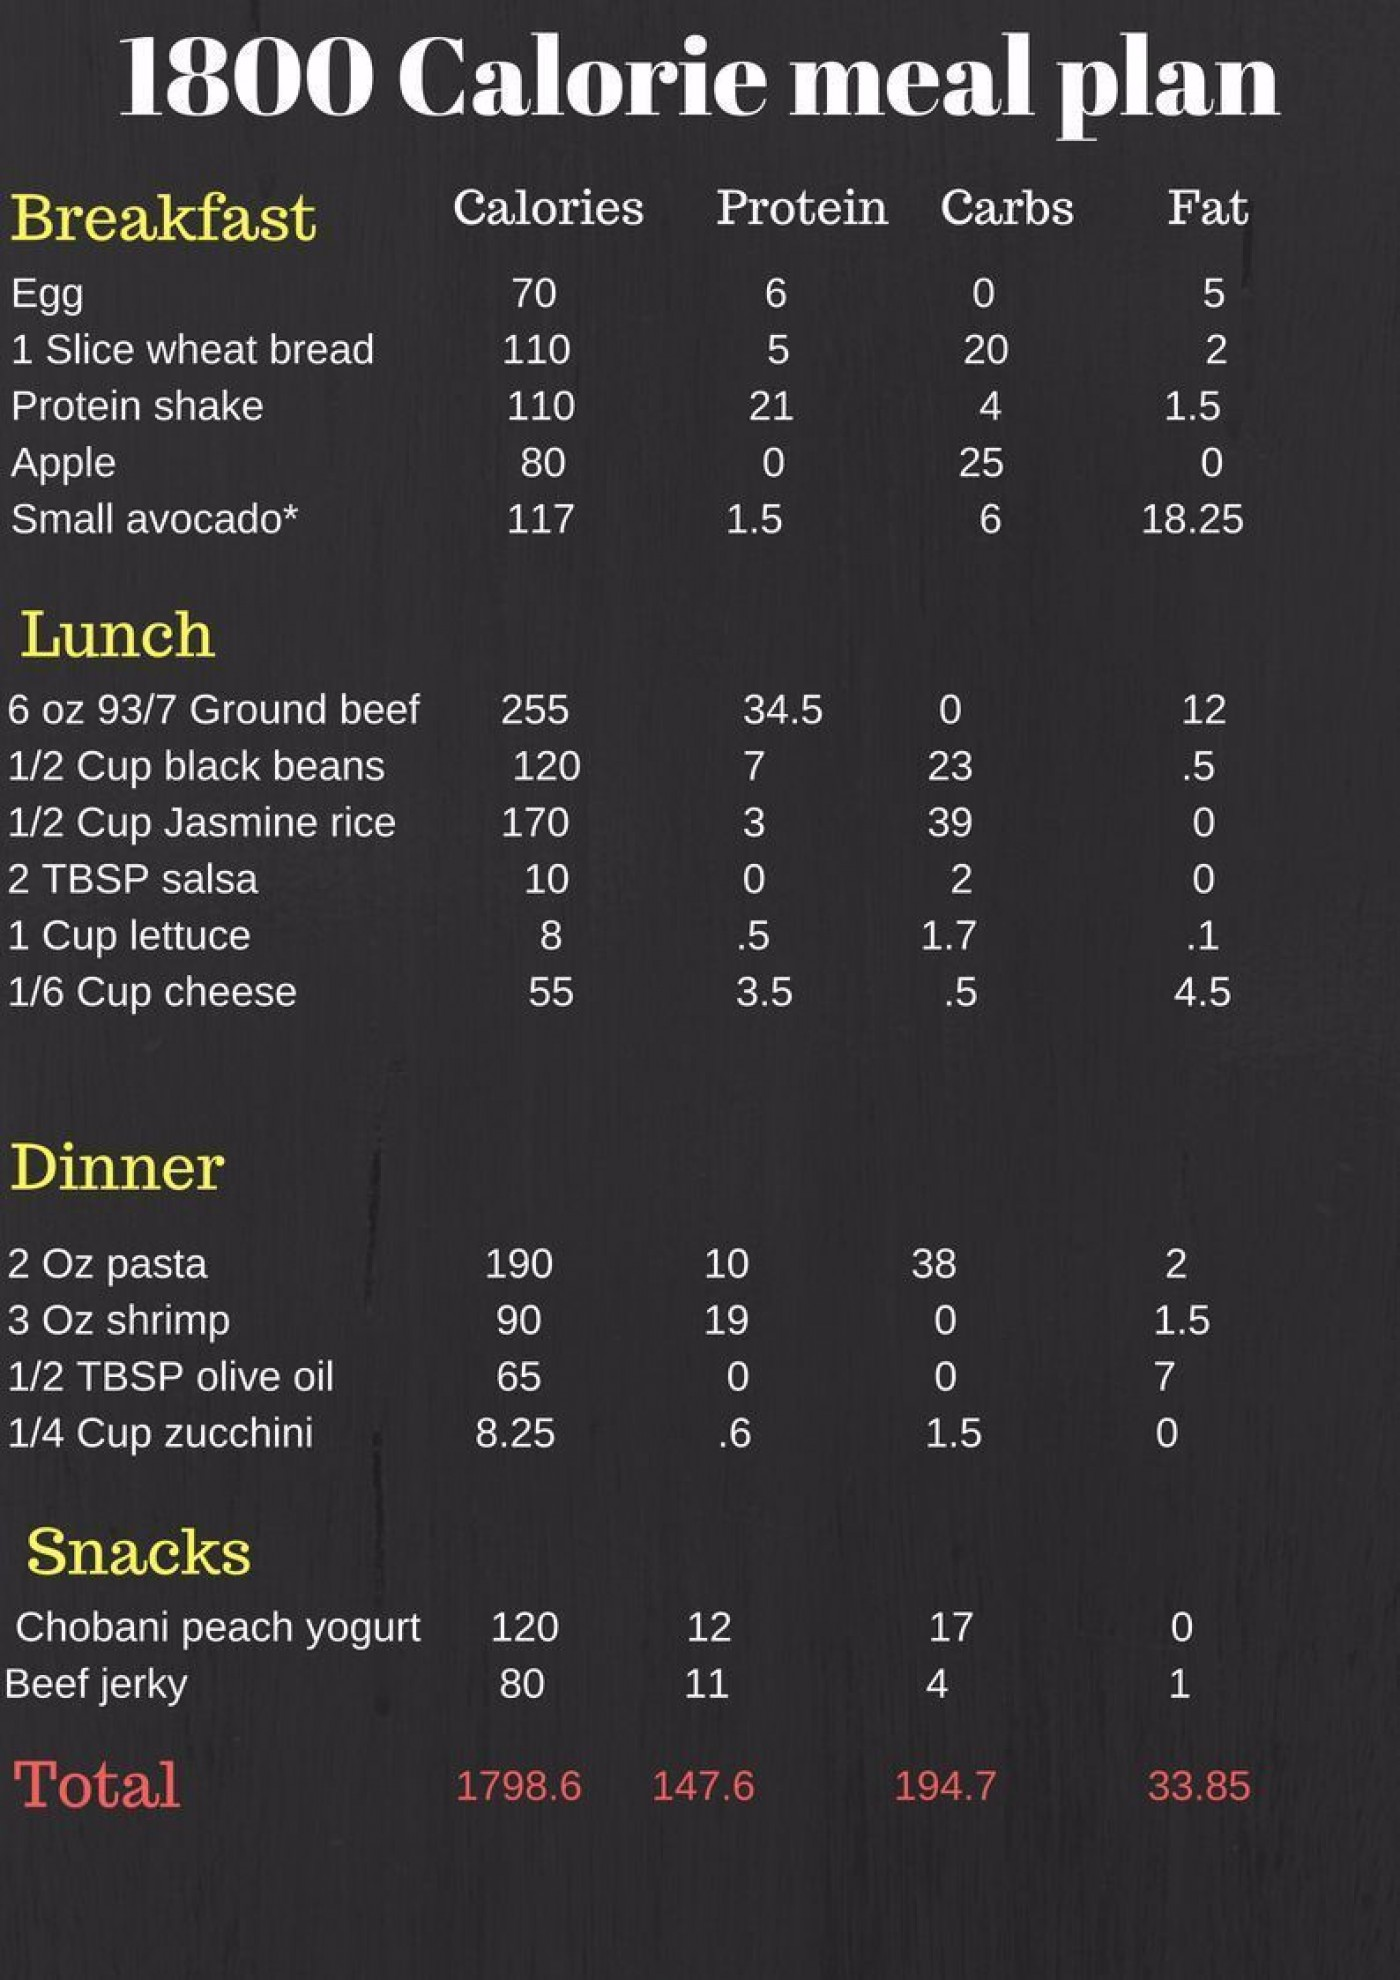 002 Awful Sample 1800 Calorie Meal Plan Pdf High Definition 1400